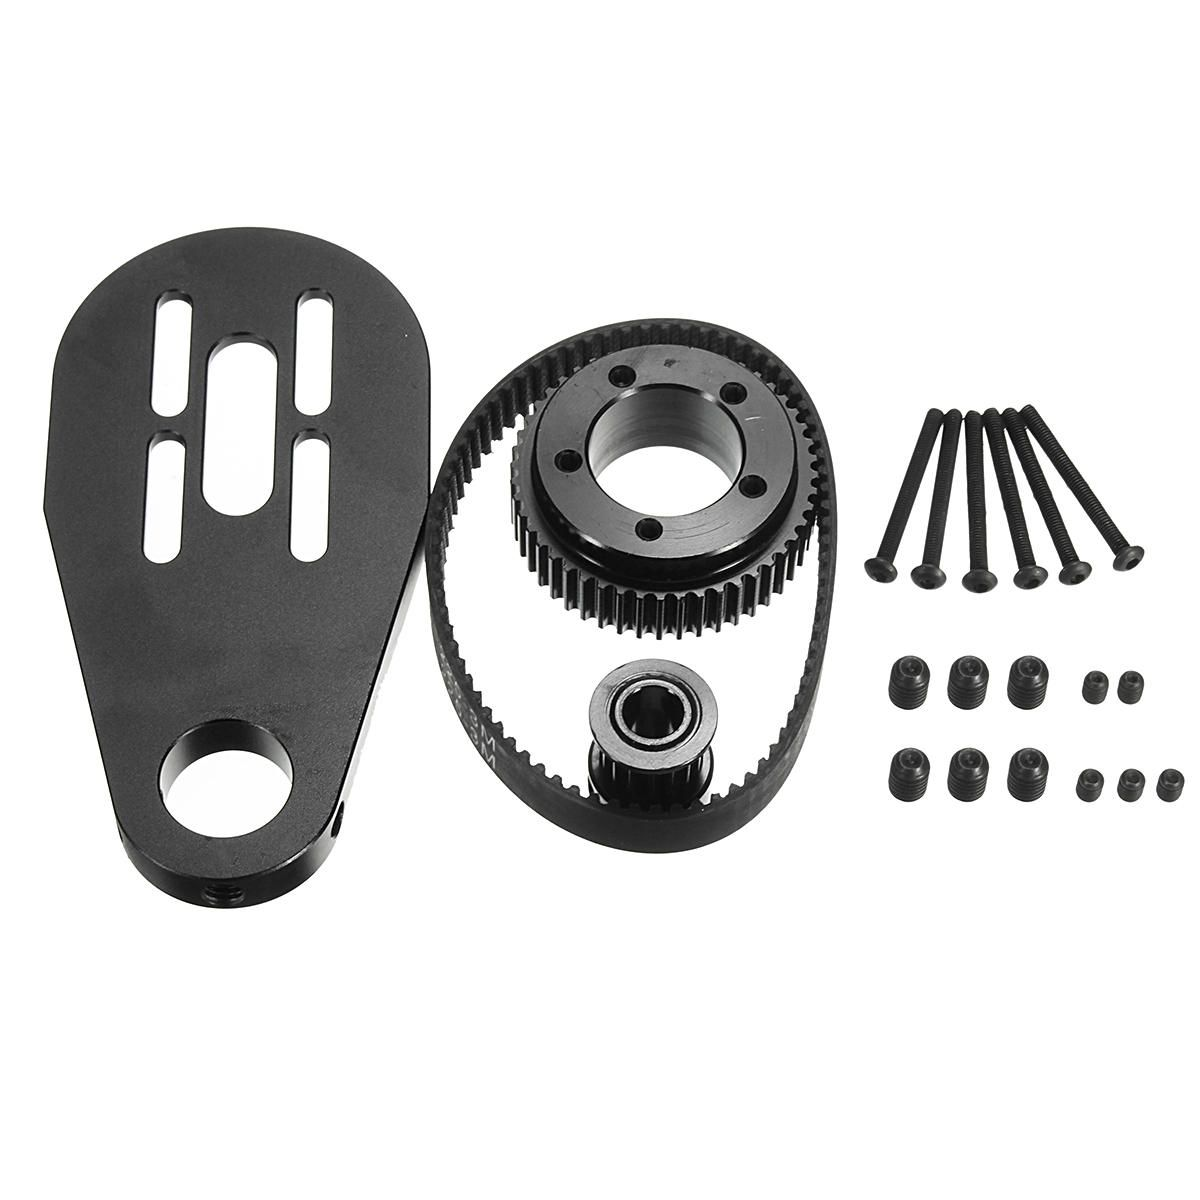 WWP US$21.08 DIY Parts Kit Pulleys And Motor Mount For 72/70MM Wheels  Electric Scooter